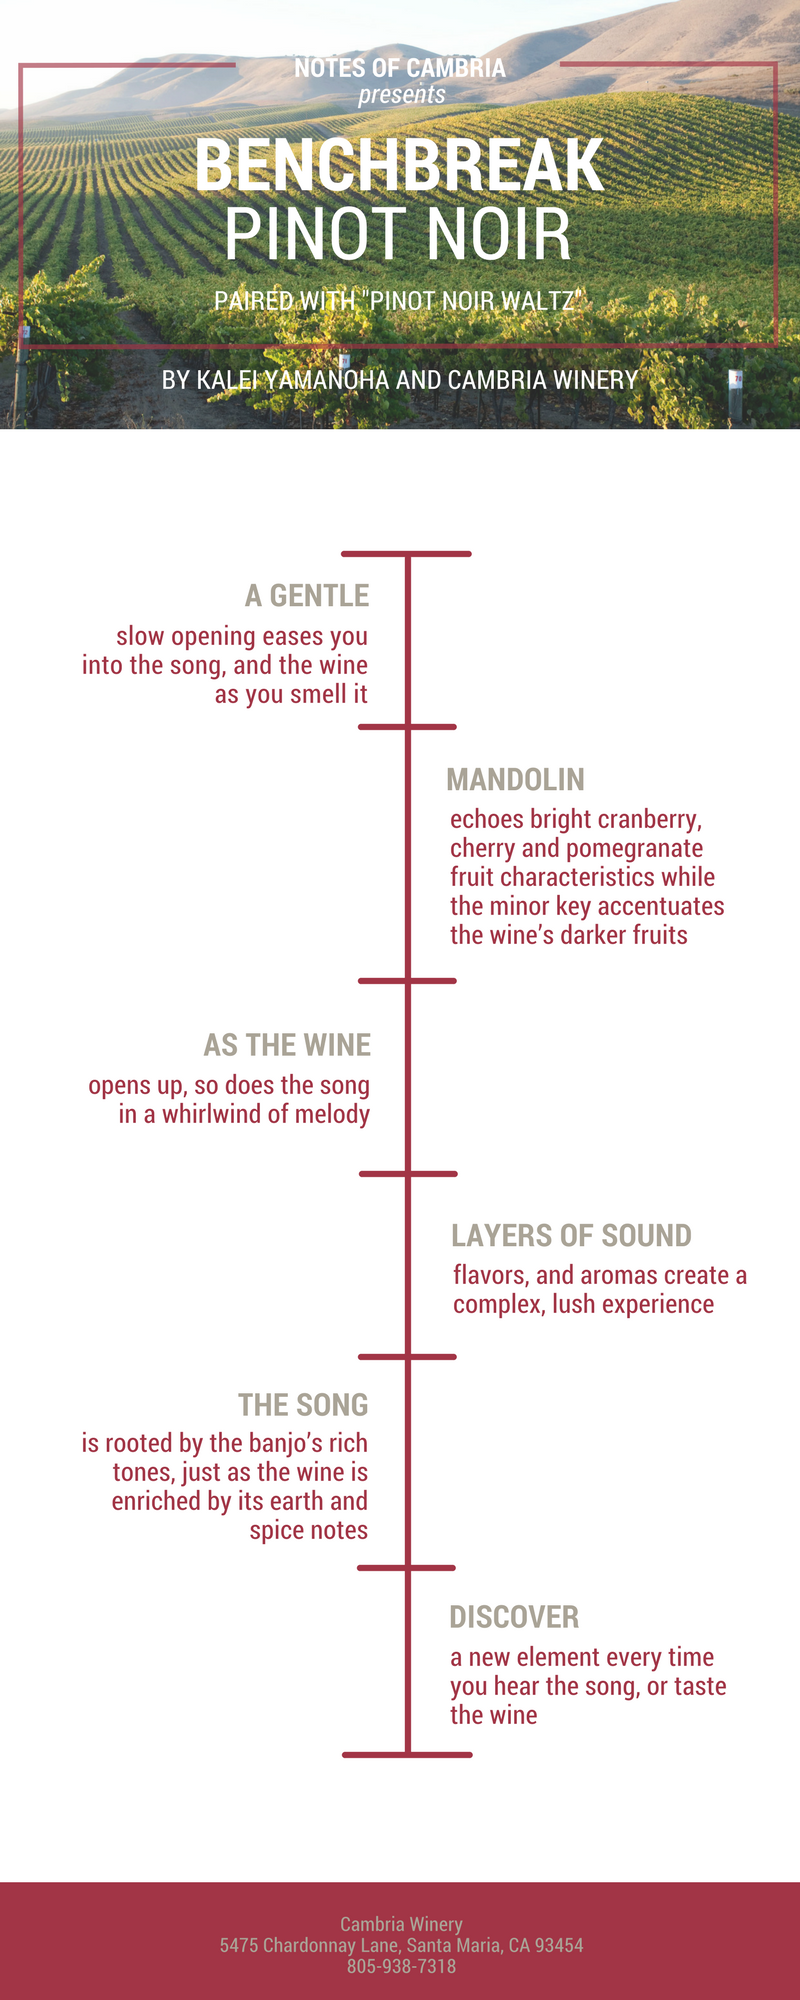 Red Wine Timeline and Notes of Cambria Wine Playlist